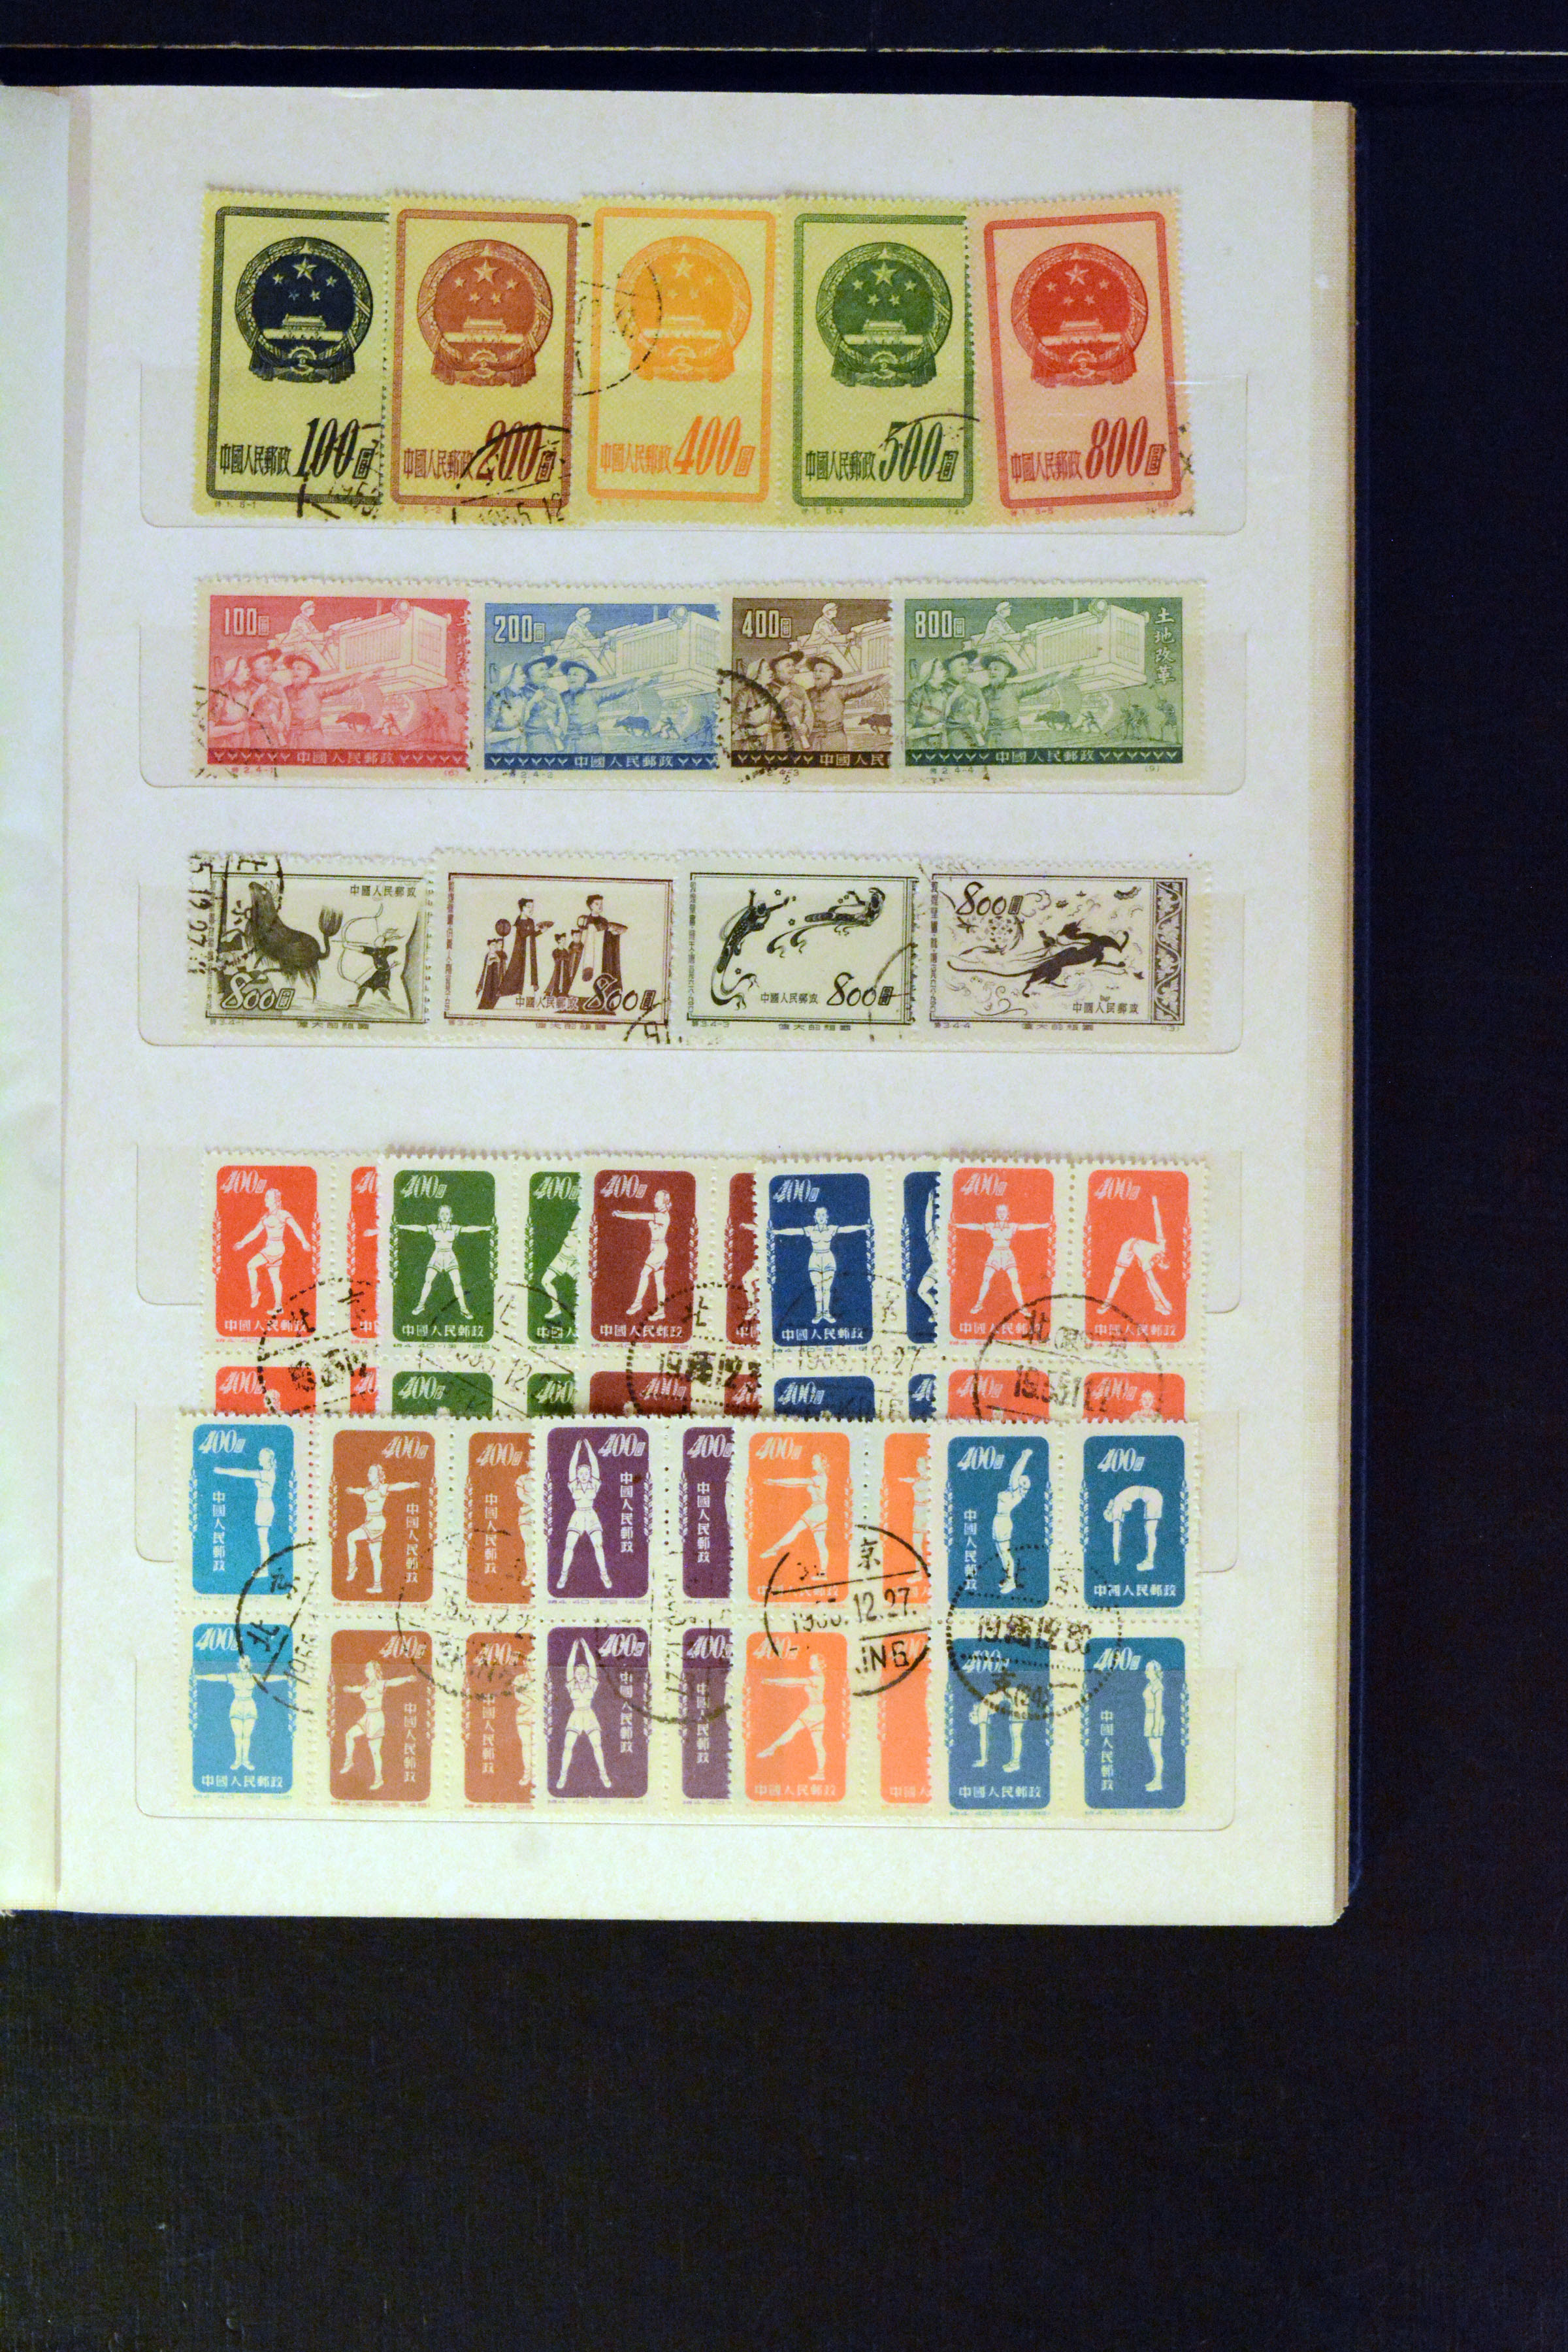 Lot 4423 - Overseas People's Republic of China -  Heinrich Koehler Auktionen Auction #368- Day 3